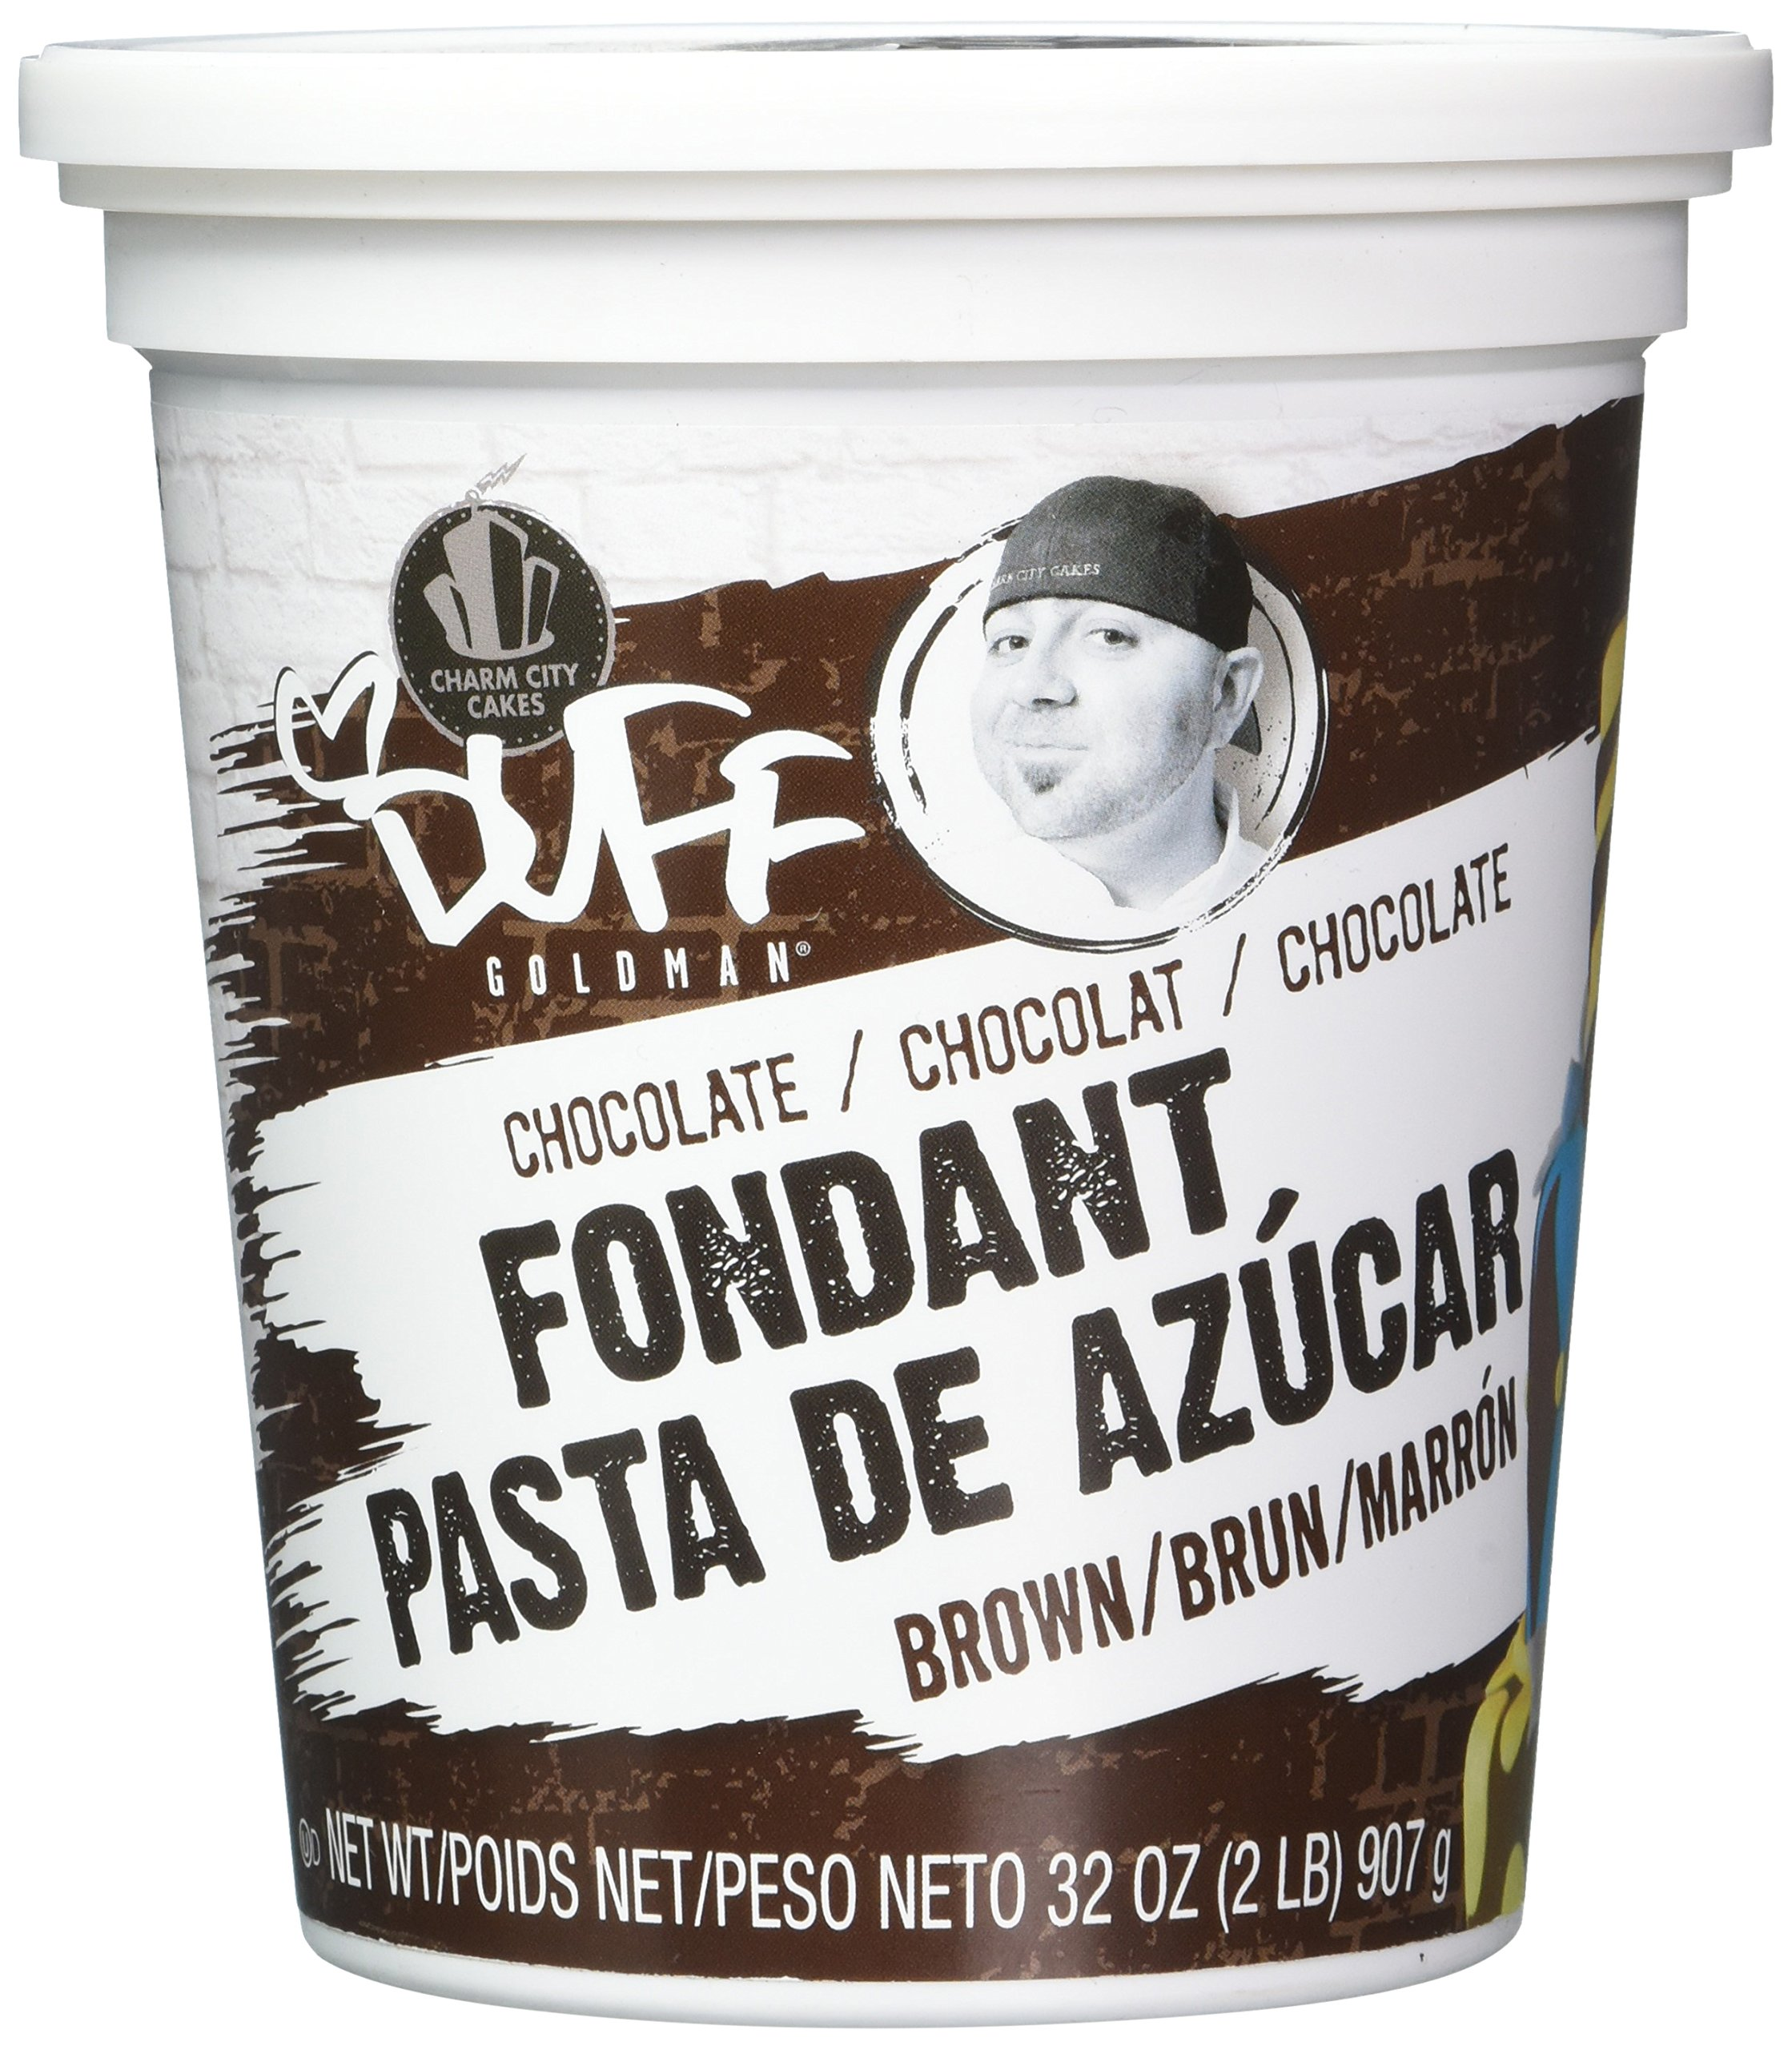 Duff - Buttercream Fondant 2Lb, Brown/Chocolate